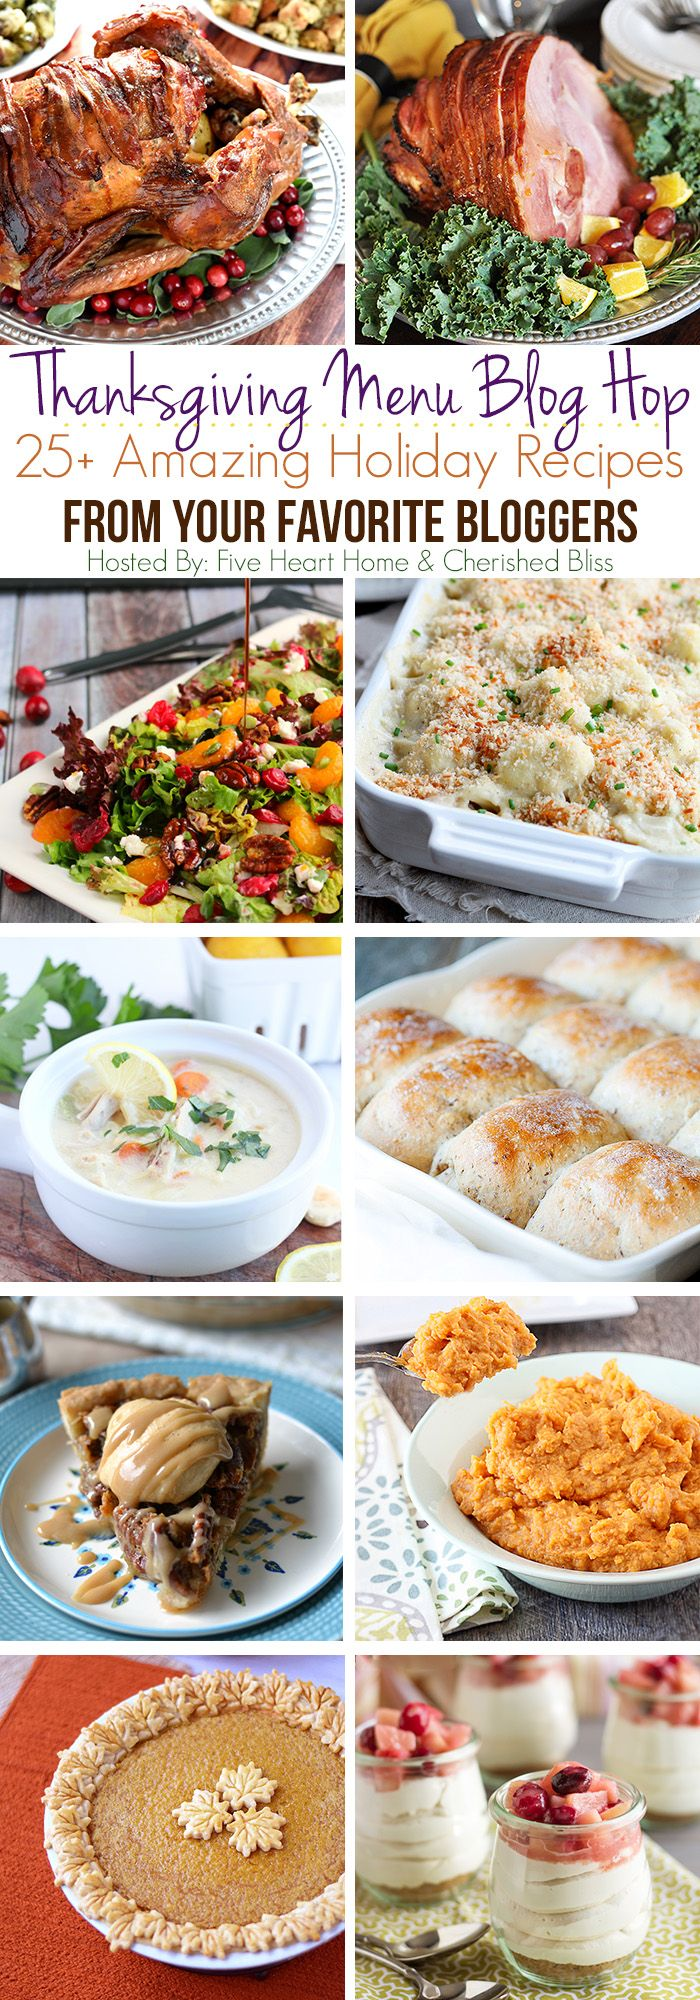 Over 25 Amazing Holiday Recipes From Your Favorite Bloggers! Make your Thanksgiving Menu Planning a snap!